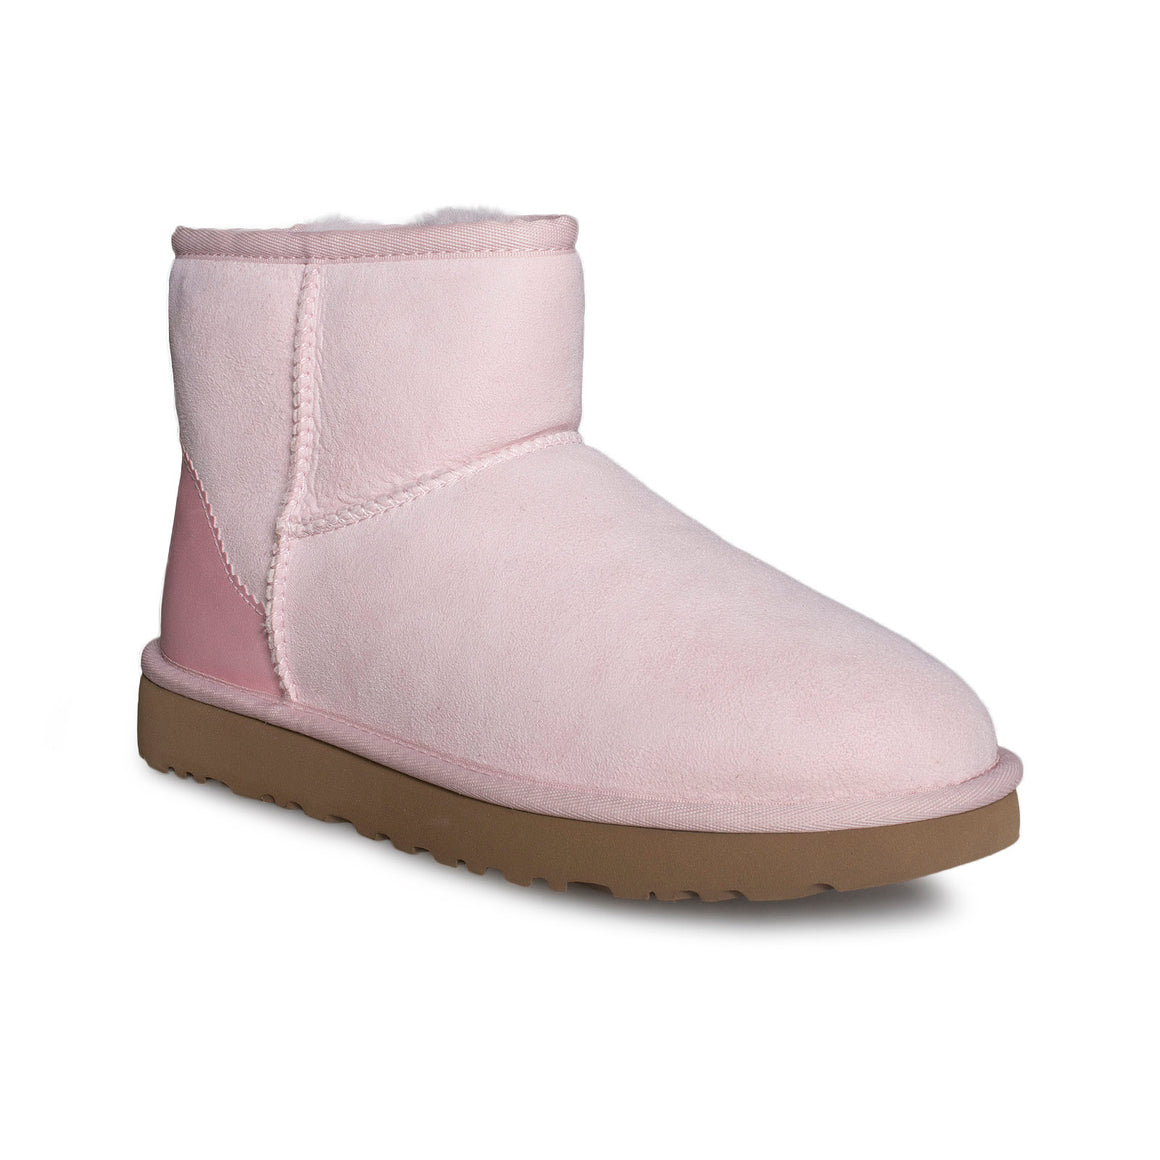 UGG Classic Mini II Metallic Seashell Pink Boots - Women's